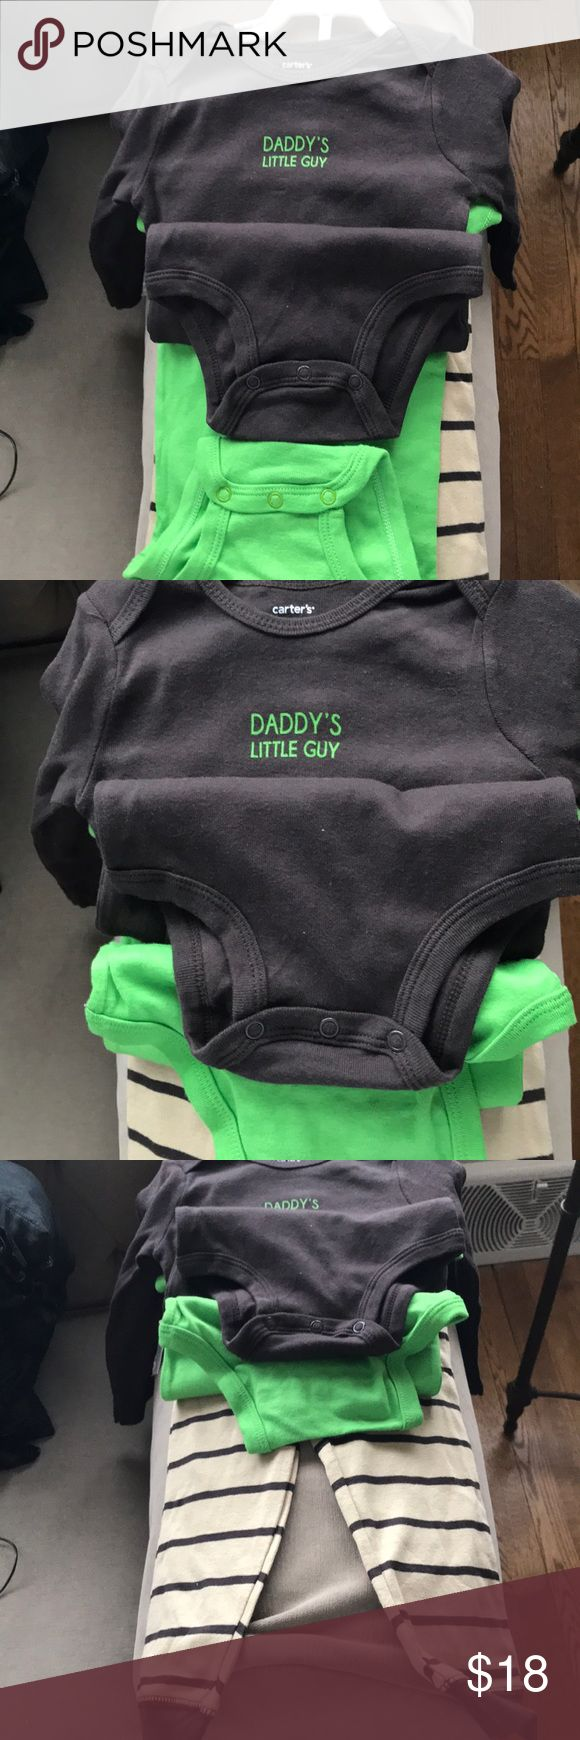 Cutest ever: baby boy cotton 3 piece set Boo Tom has a monkey, so does the green bodysuit. Brown bodysuit says Daddy's little guy. carters Matching Sets